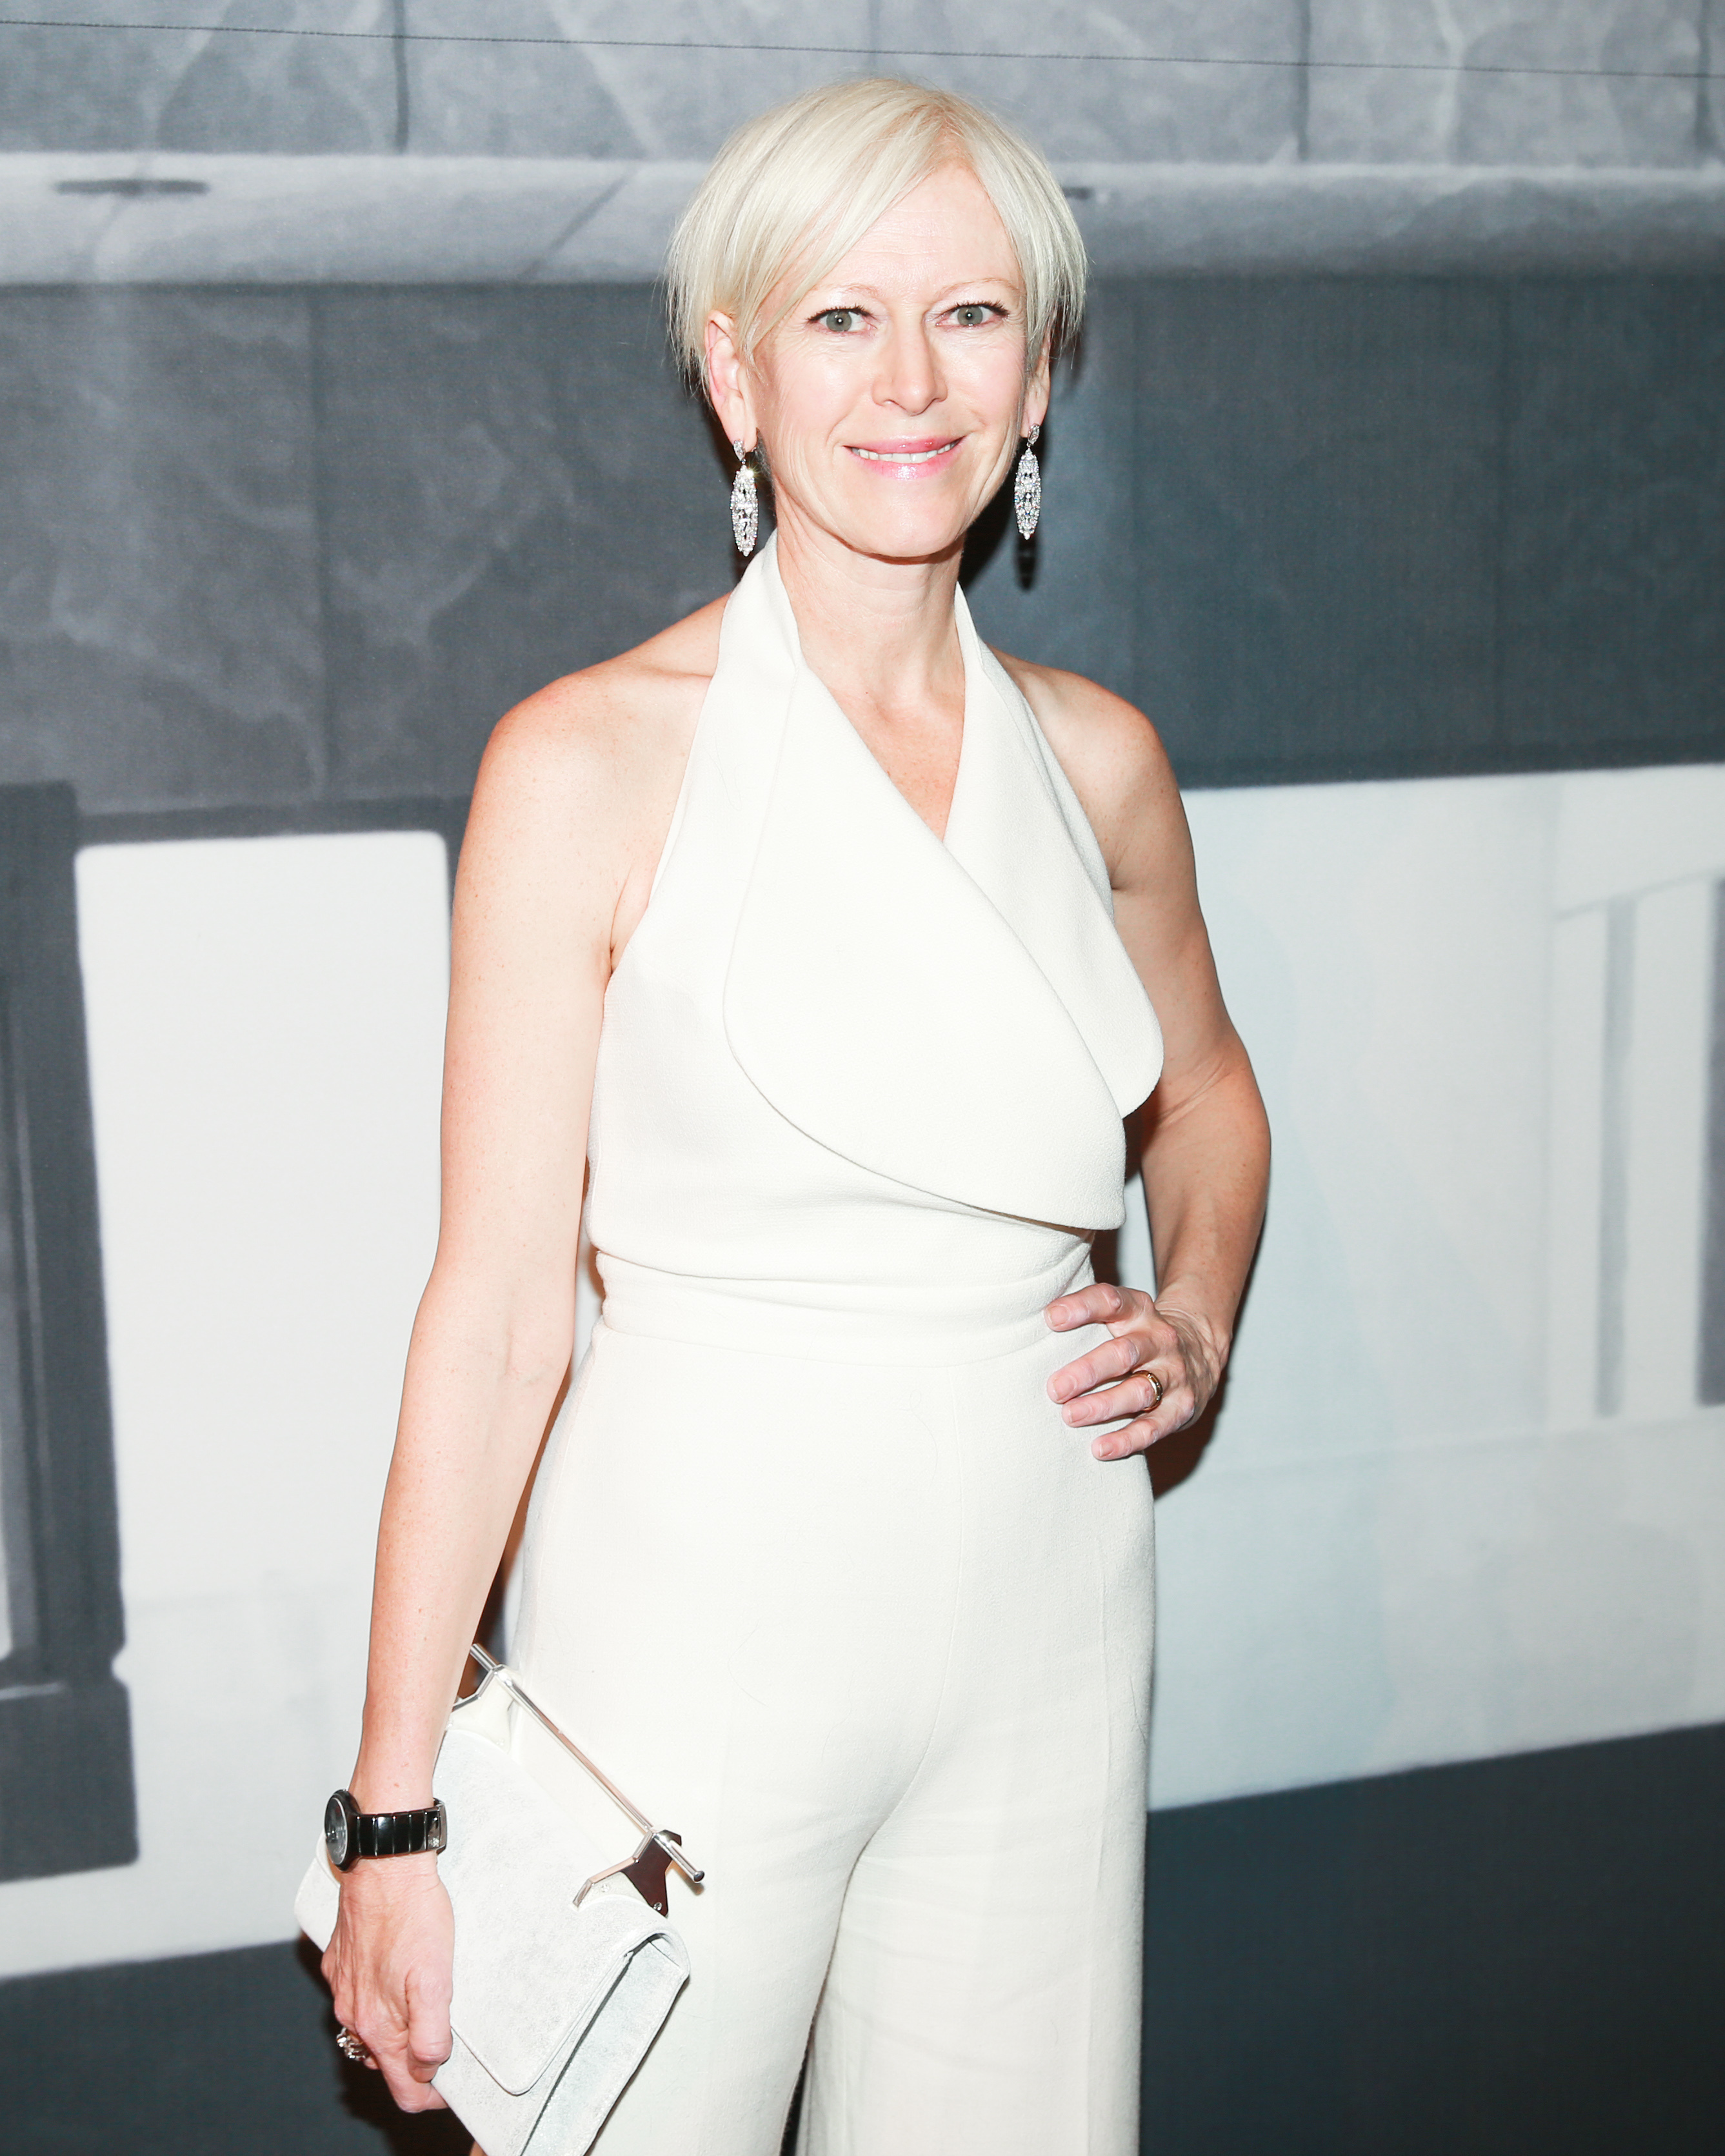 Joanna coles shares her holiday gift picks daily front row